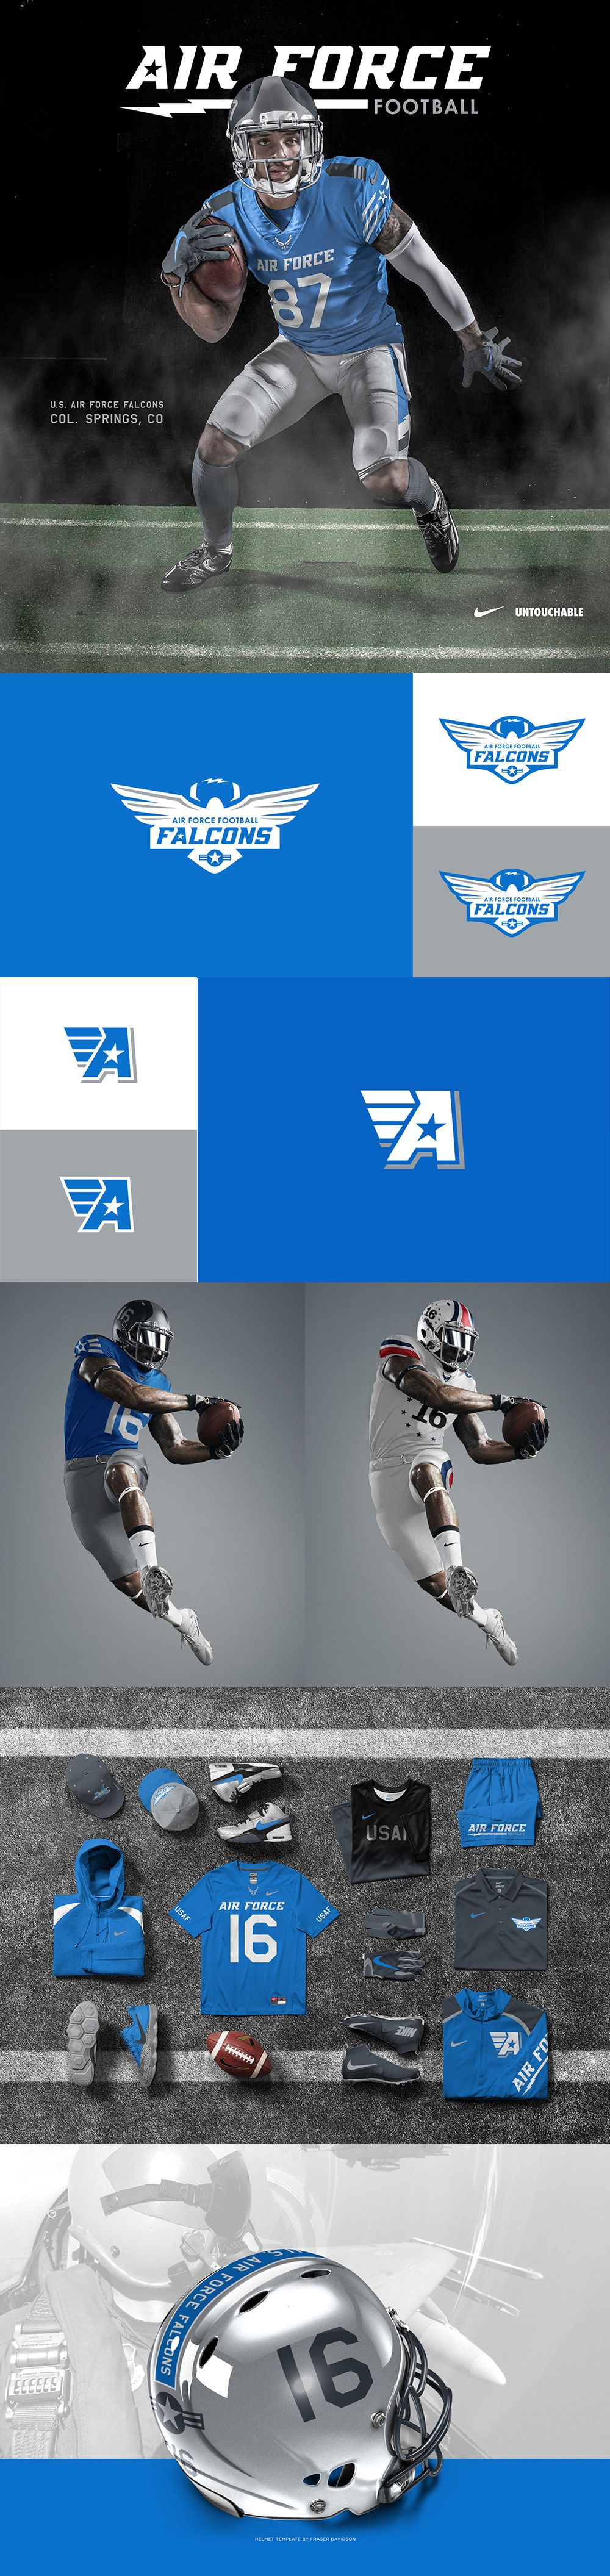 air force football brand identity project on behance branding id